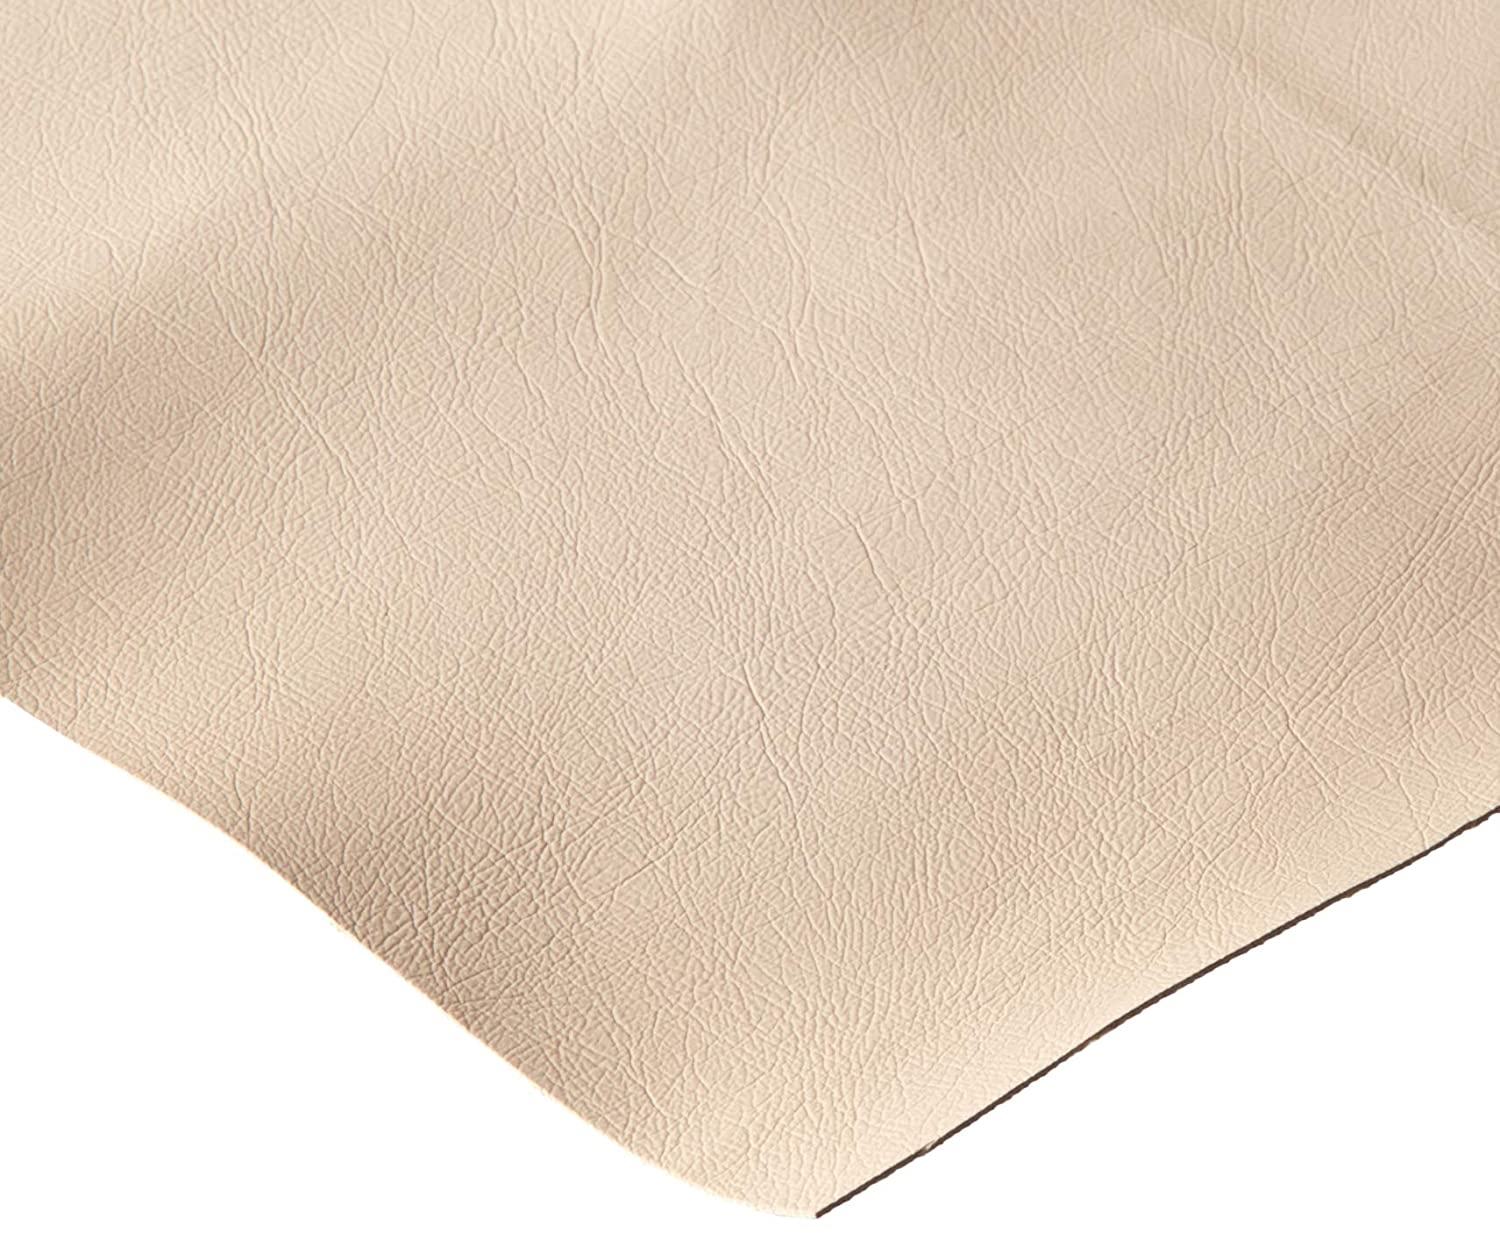 Threaders Einfädler th-1223 Crafter 's Companion Theater Kunstleder 50,8 x 137,2 cm beige Crafter's Companion